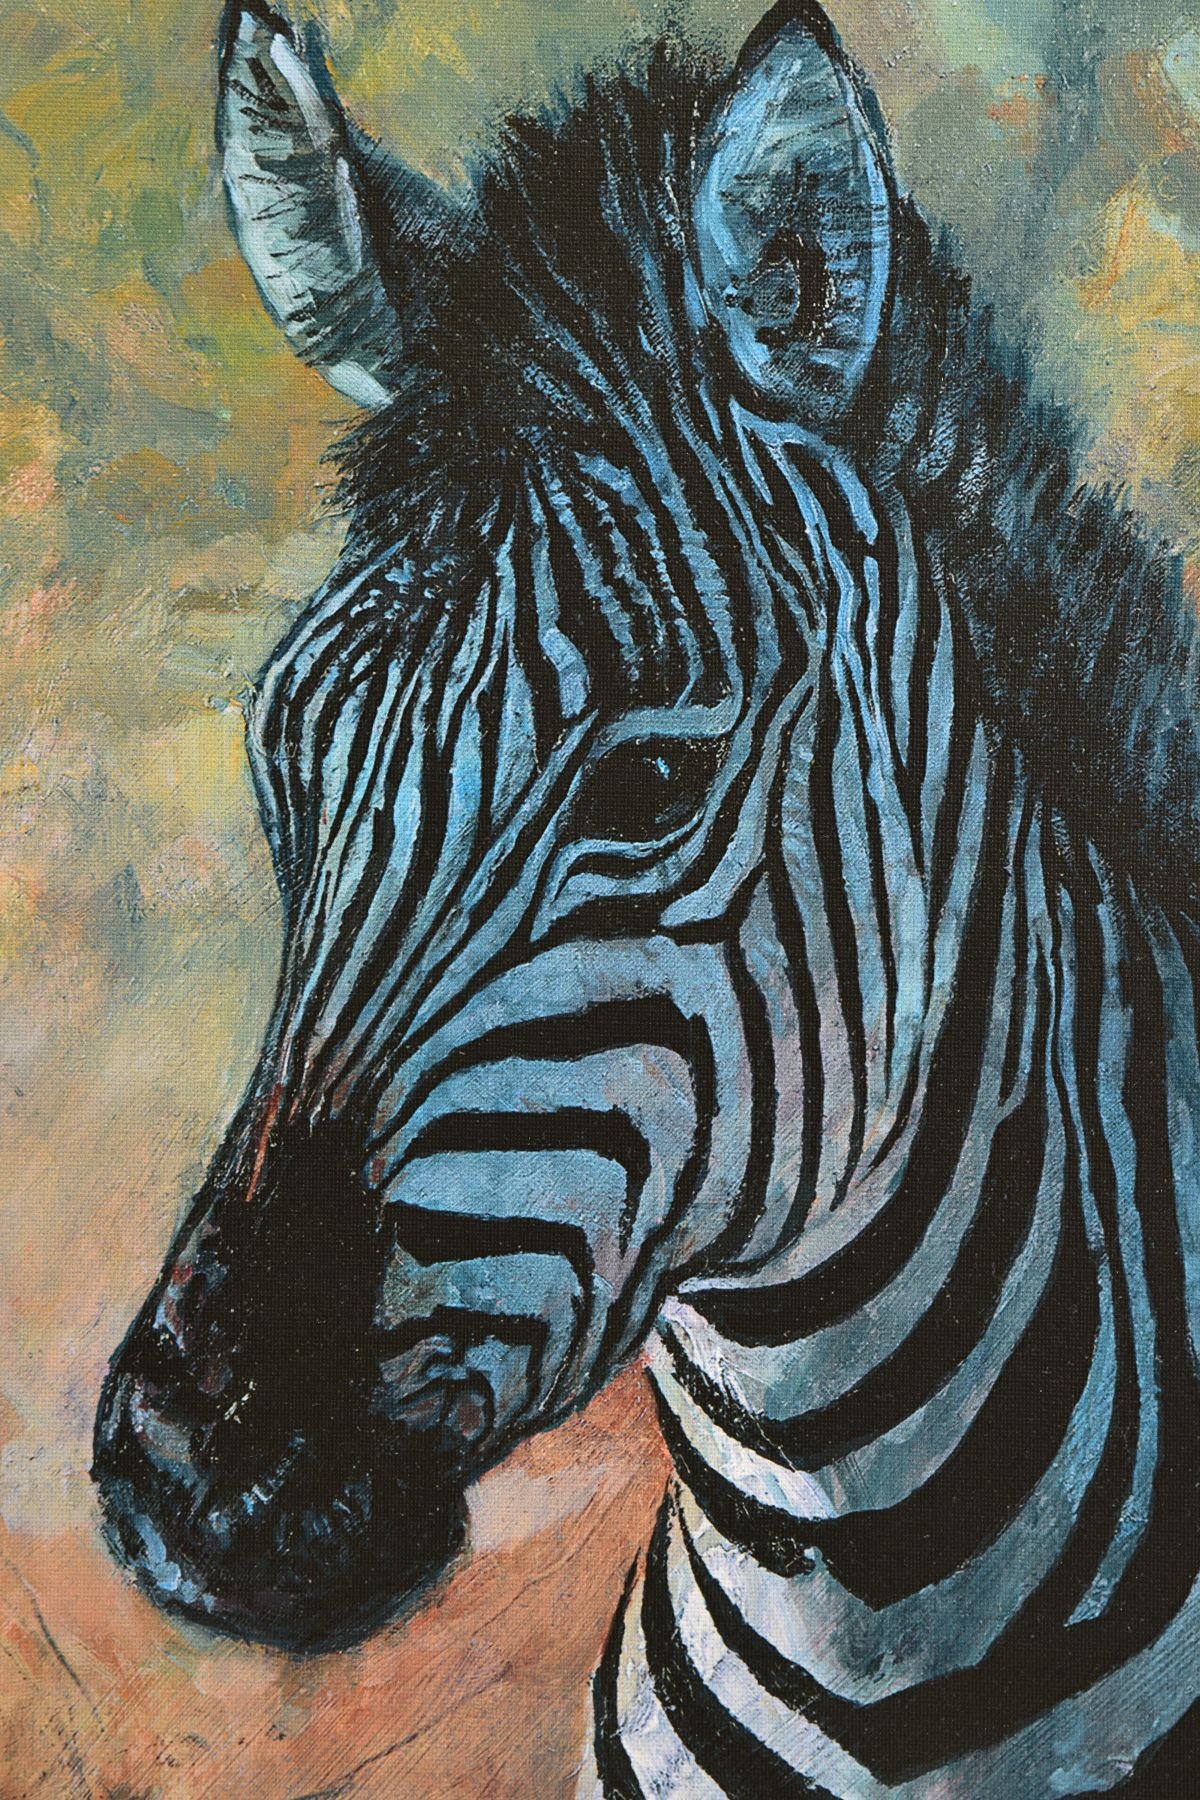 ROLF HARRIS (AUSTRALIAN 1930) 'YOUNG ZEBRA' a limited edition print 49/195, signed top right, no - Image 2 of 4